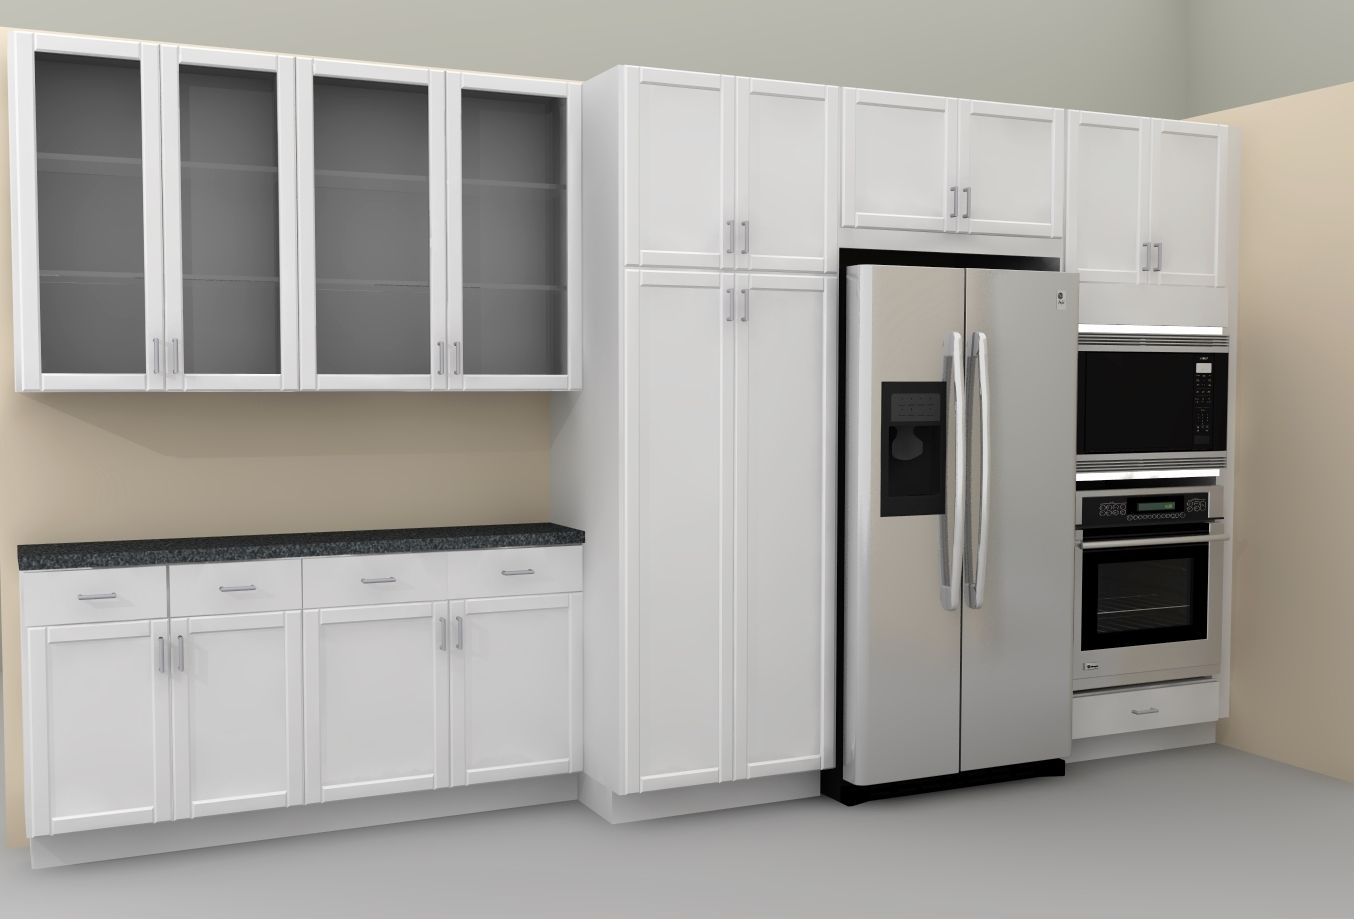 Ikea Kitchen Cabinets With Glass Doors Pantry Cabinet Ikea